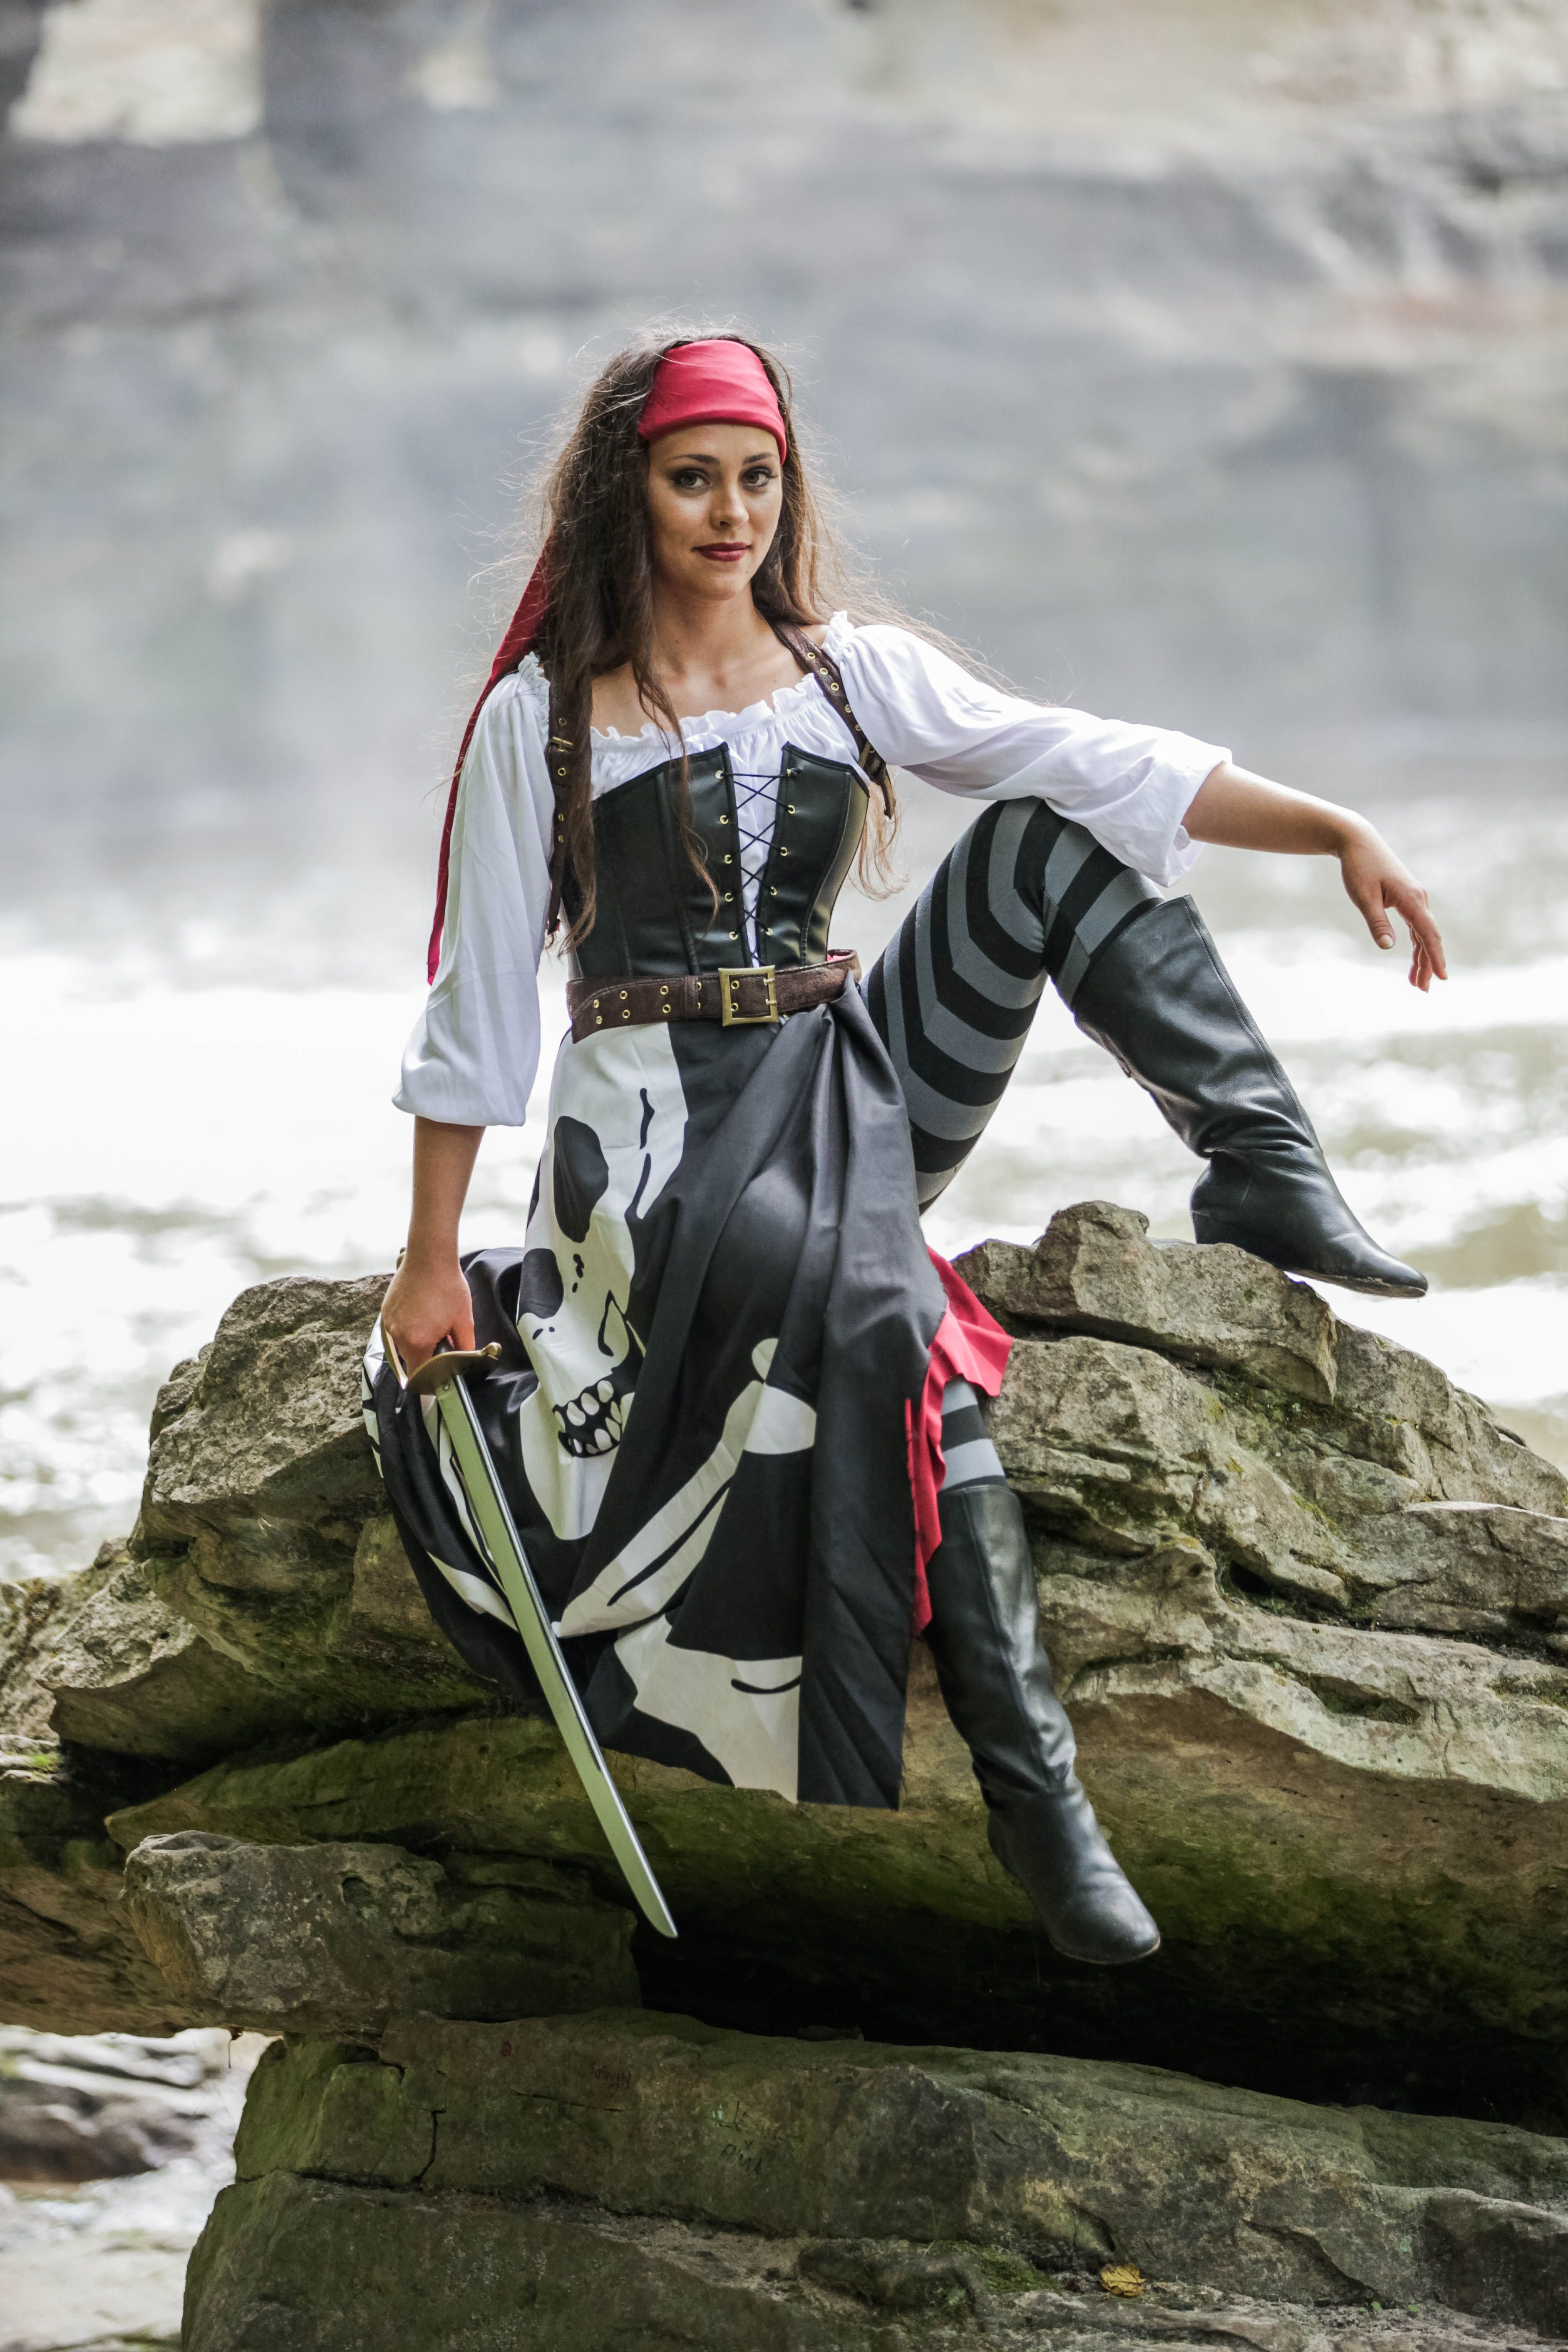 Fun Halloween costume idea- Sail the seven seas with our realistic womenu0027s pirate costume!  sc 1 st  Pinterest & Shop Halloween womenu0027s pirate costumes at RebelsMarket. | Halloween ...